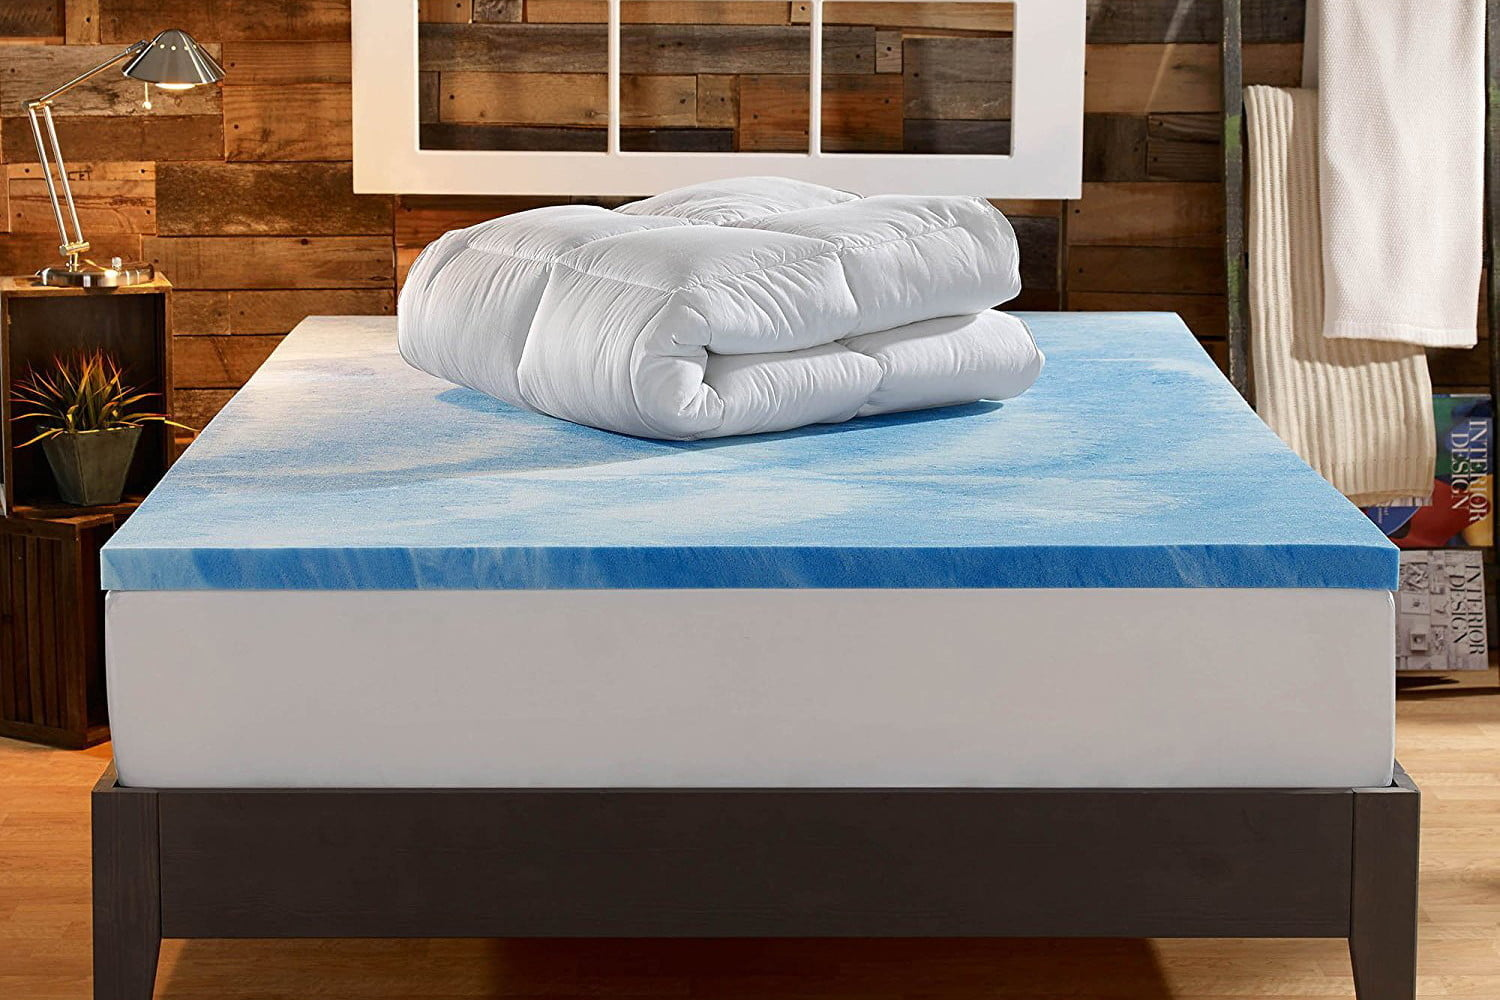 Extra Firm Mattress Topper The Best Memory Foam Mattress Toppers For A Better Night S Sleep